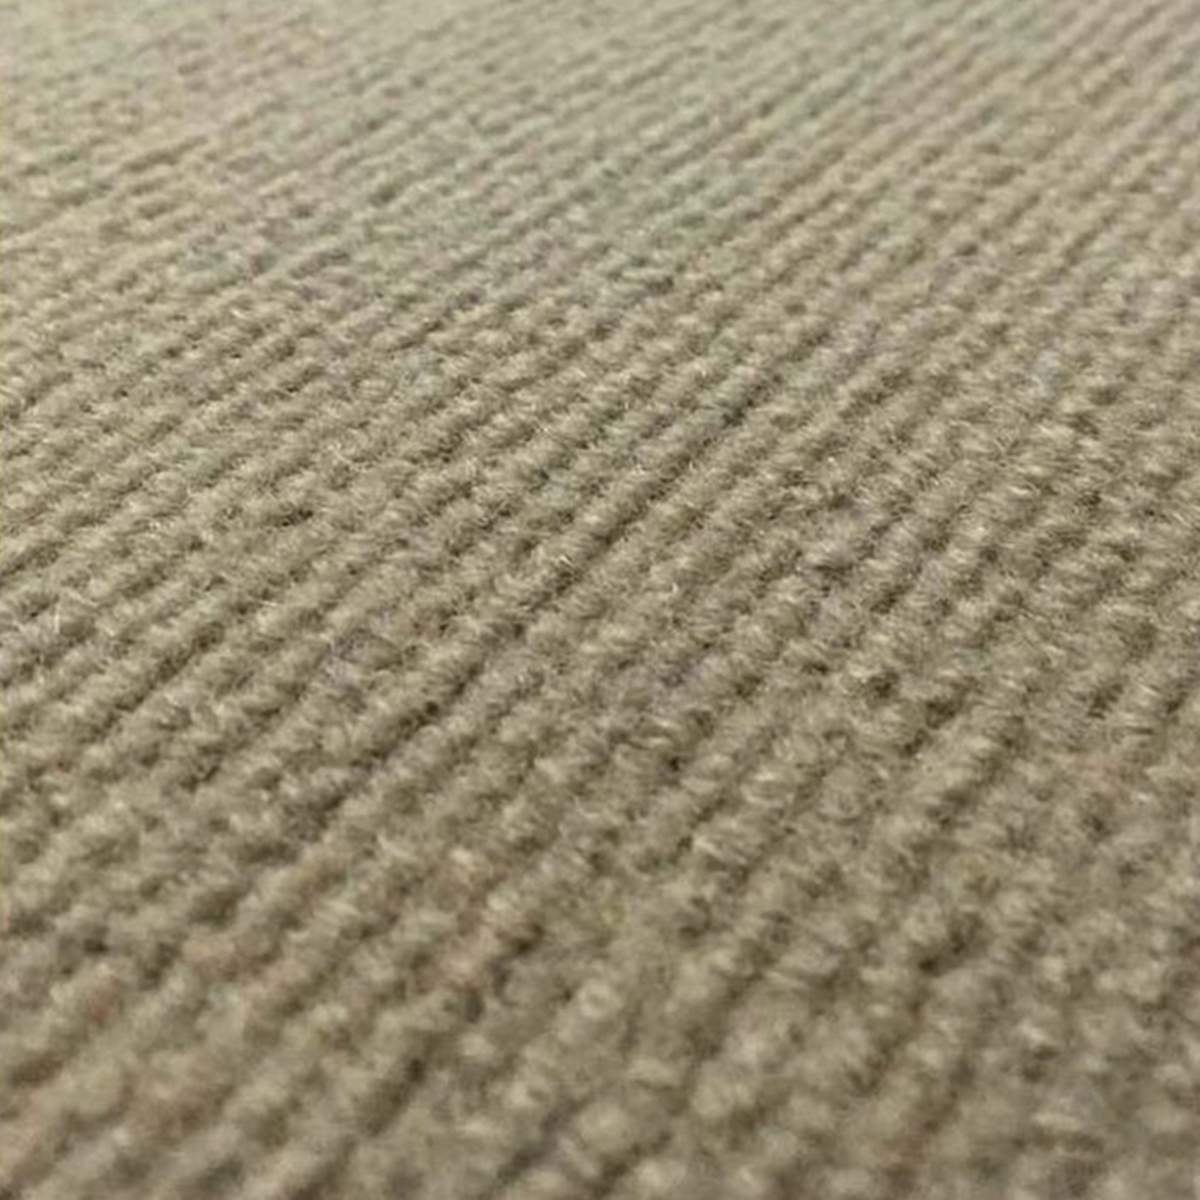 14pcs Brown/Beige Polyester Anti-slip Stair Pads Carpet Mat Self-adhesive Sticky Bottom Repeatedly-use Safety Pads Mat for Home